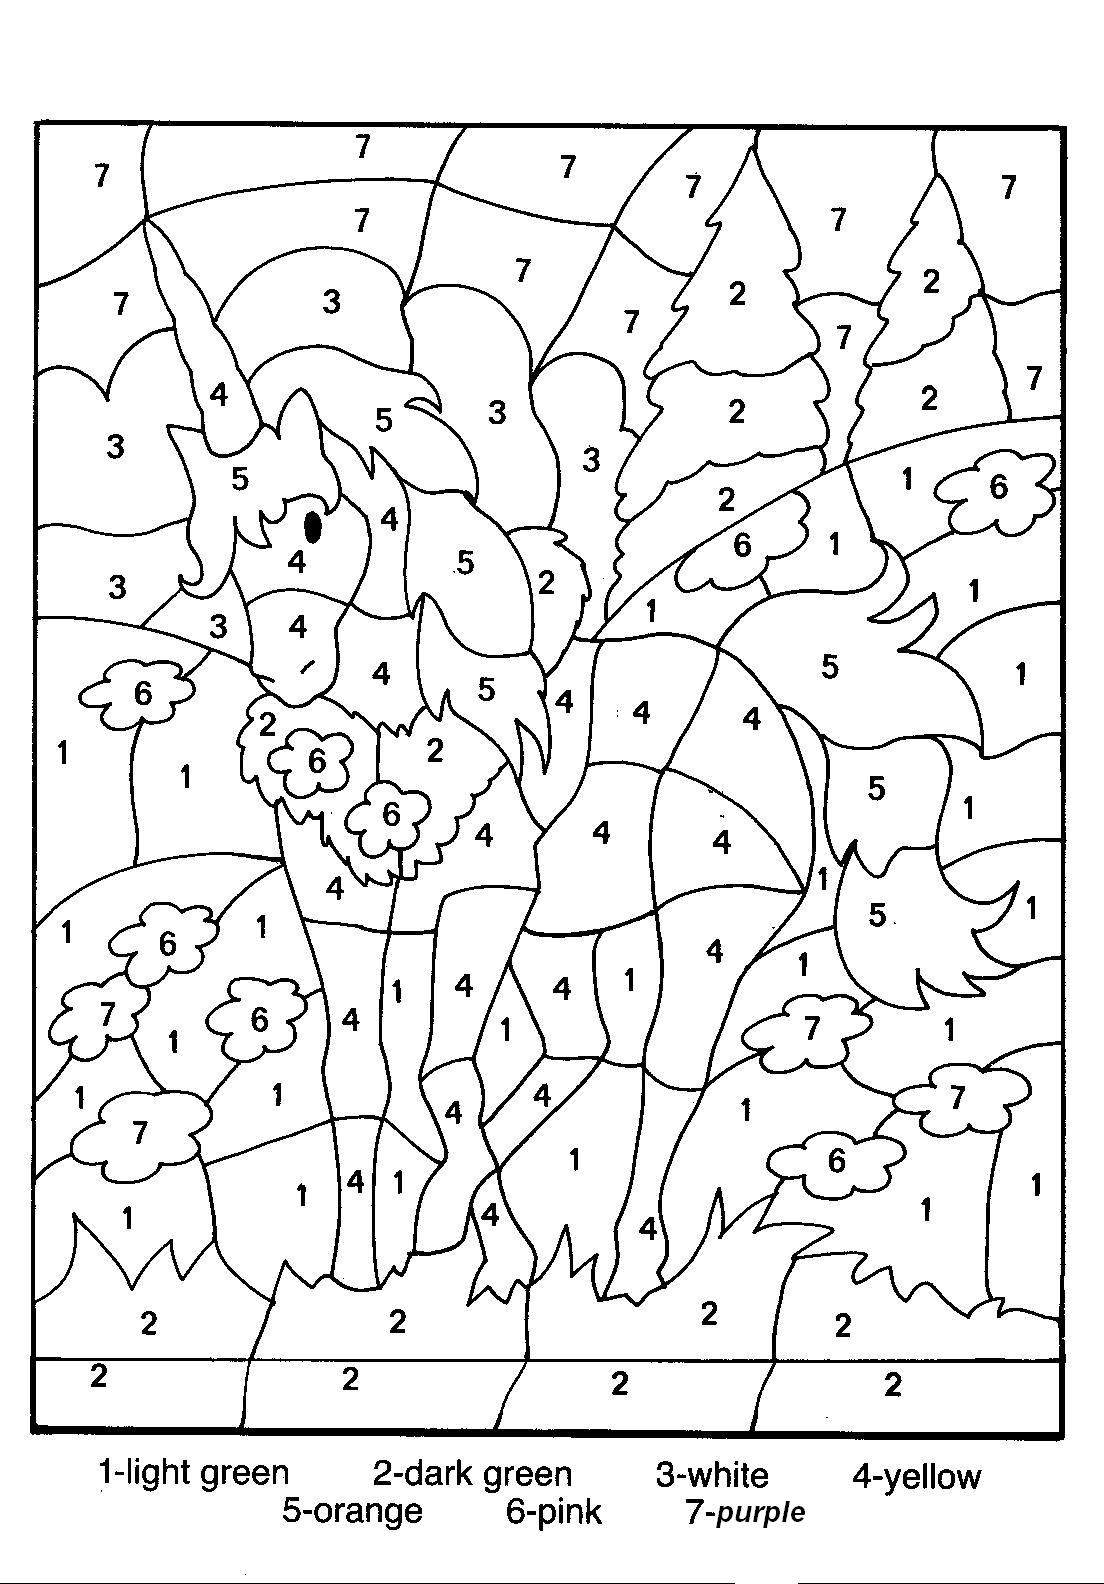 Colouring pages with colour - Free Printable Color By Number